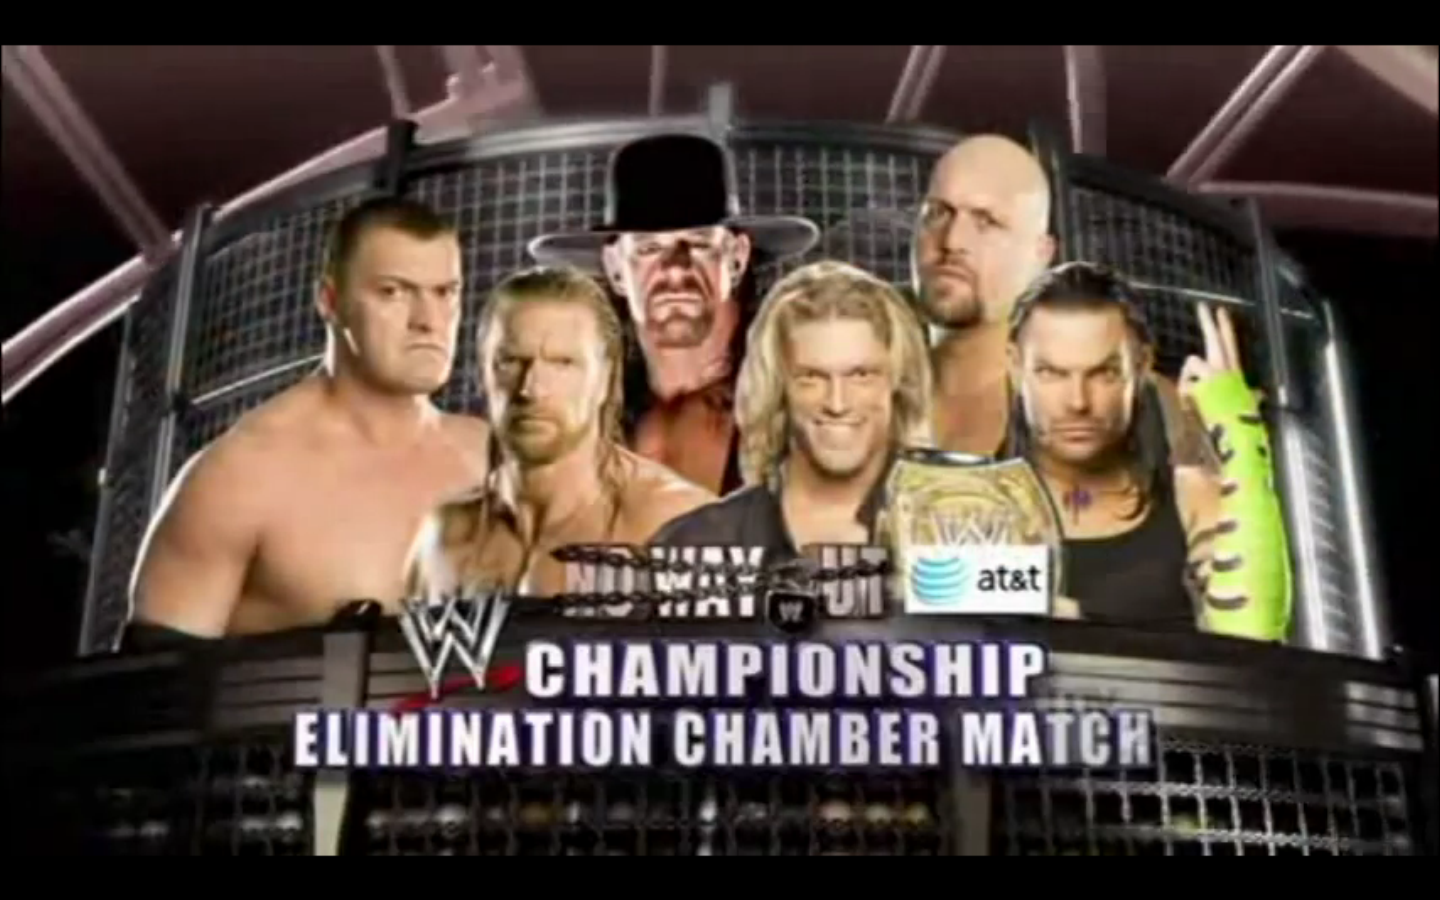 Resultado de imagen de Edge (c) vs. Jeff Hardy vs. Triple H vs. Vladimir Kozlov vs. Big Show vs. Undertaker